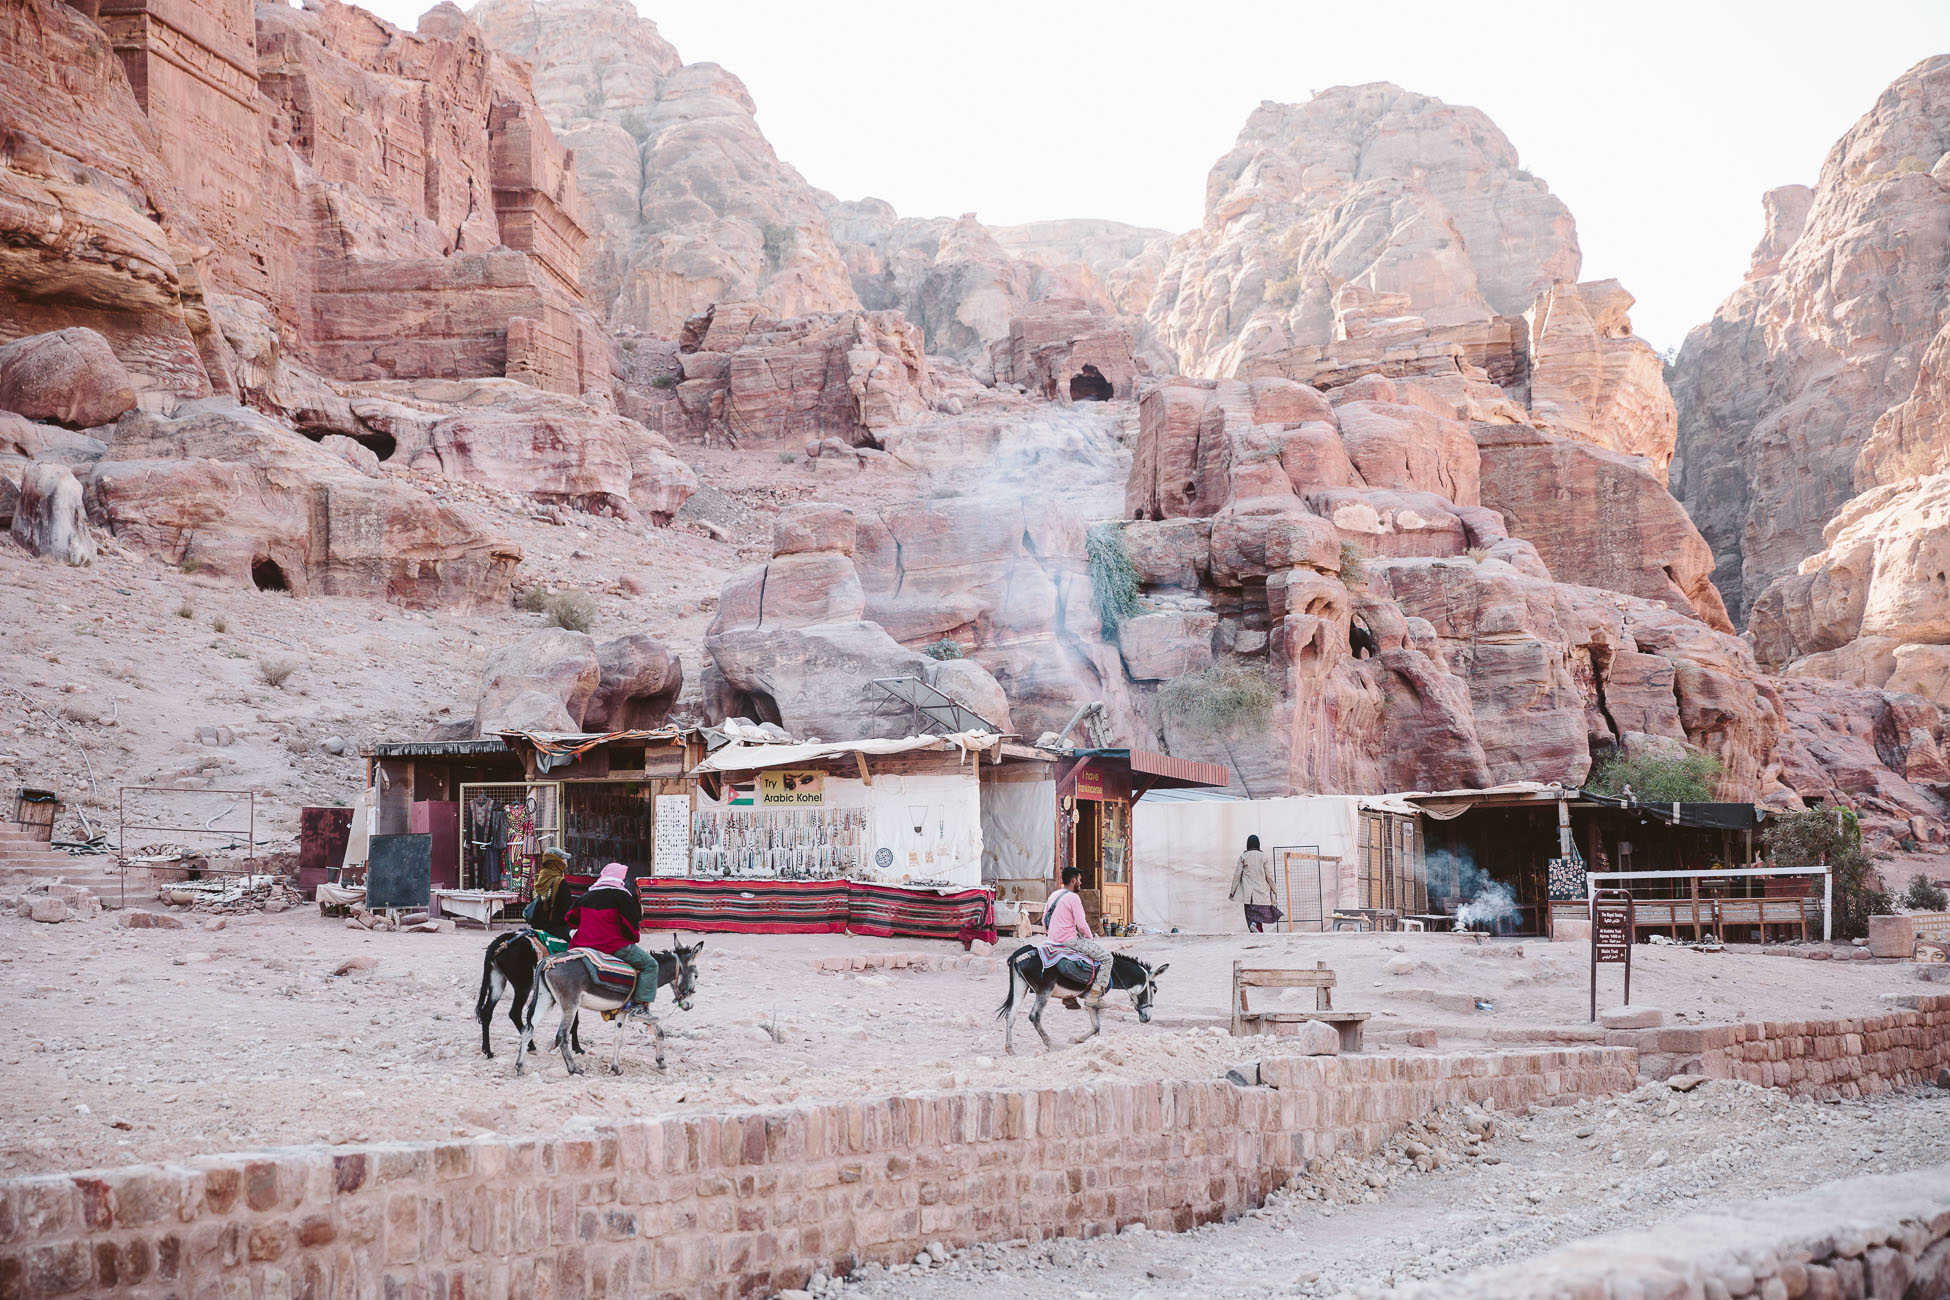 Bedouin tents in Petra Jordan